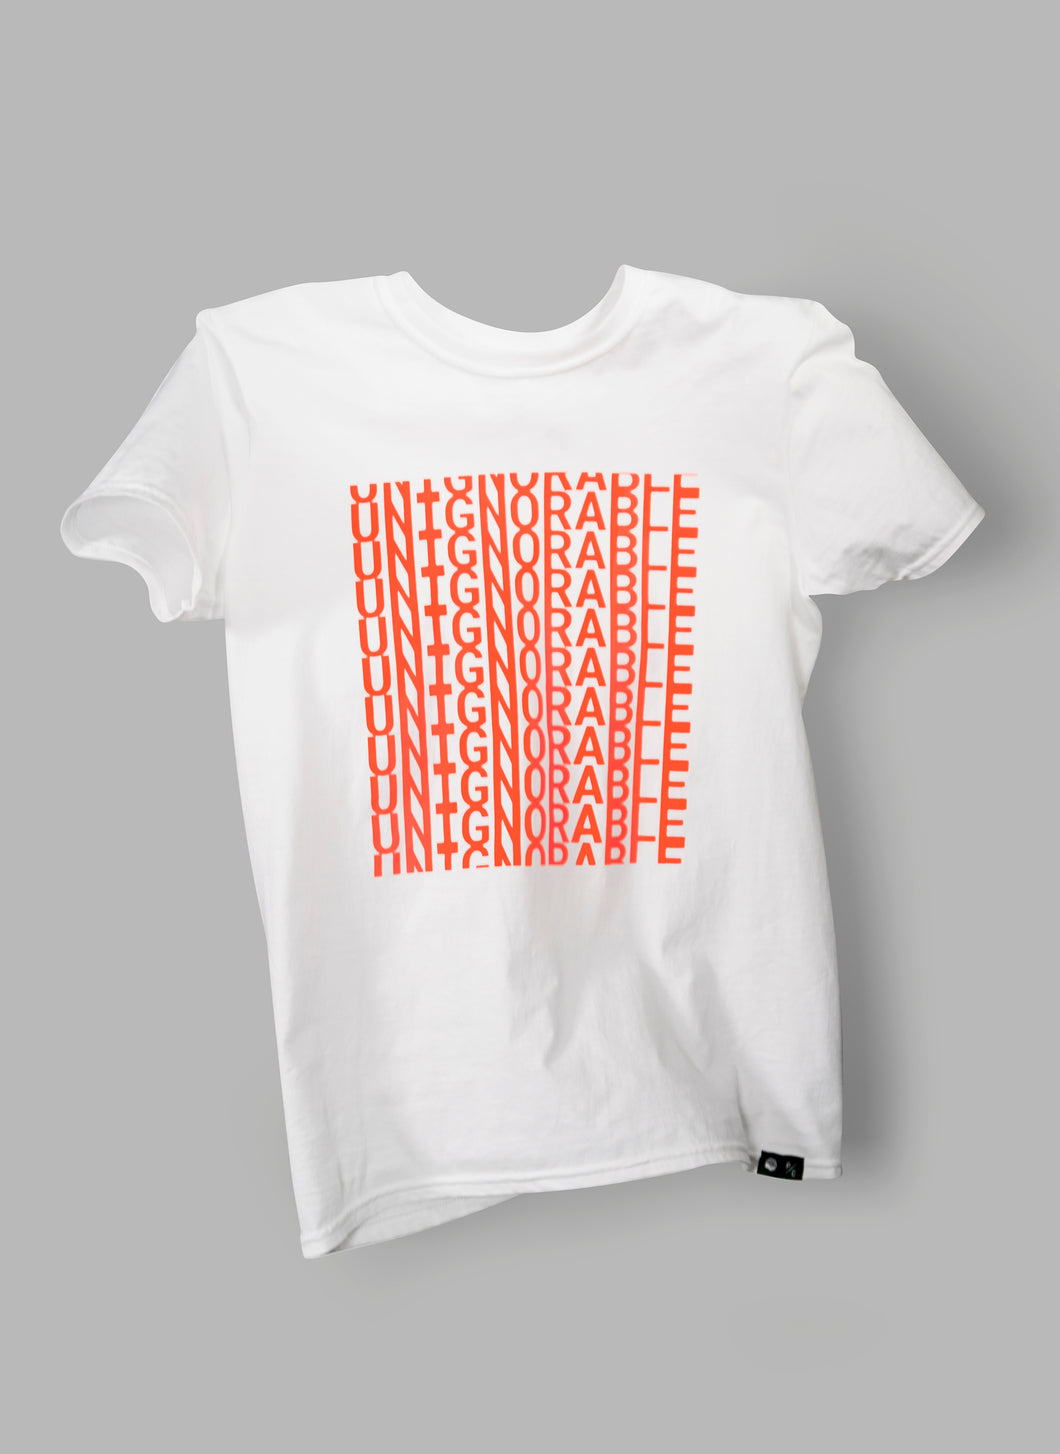 #UNIGNORABLE x Peace Collective T-Shirt